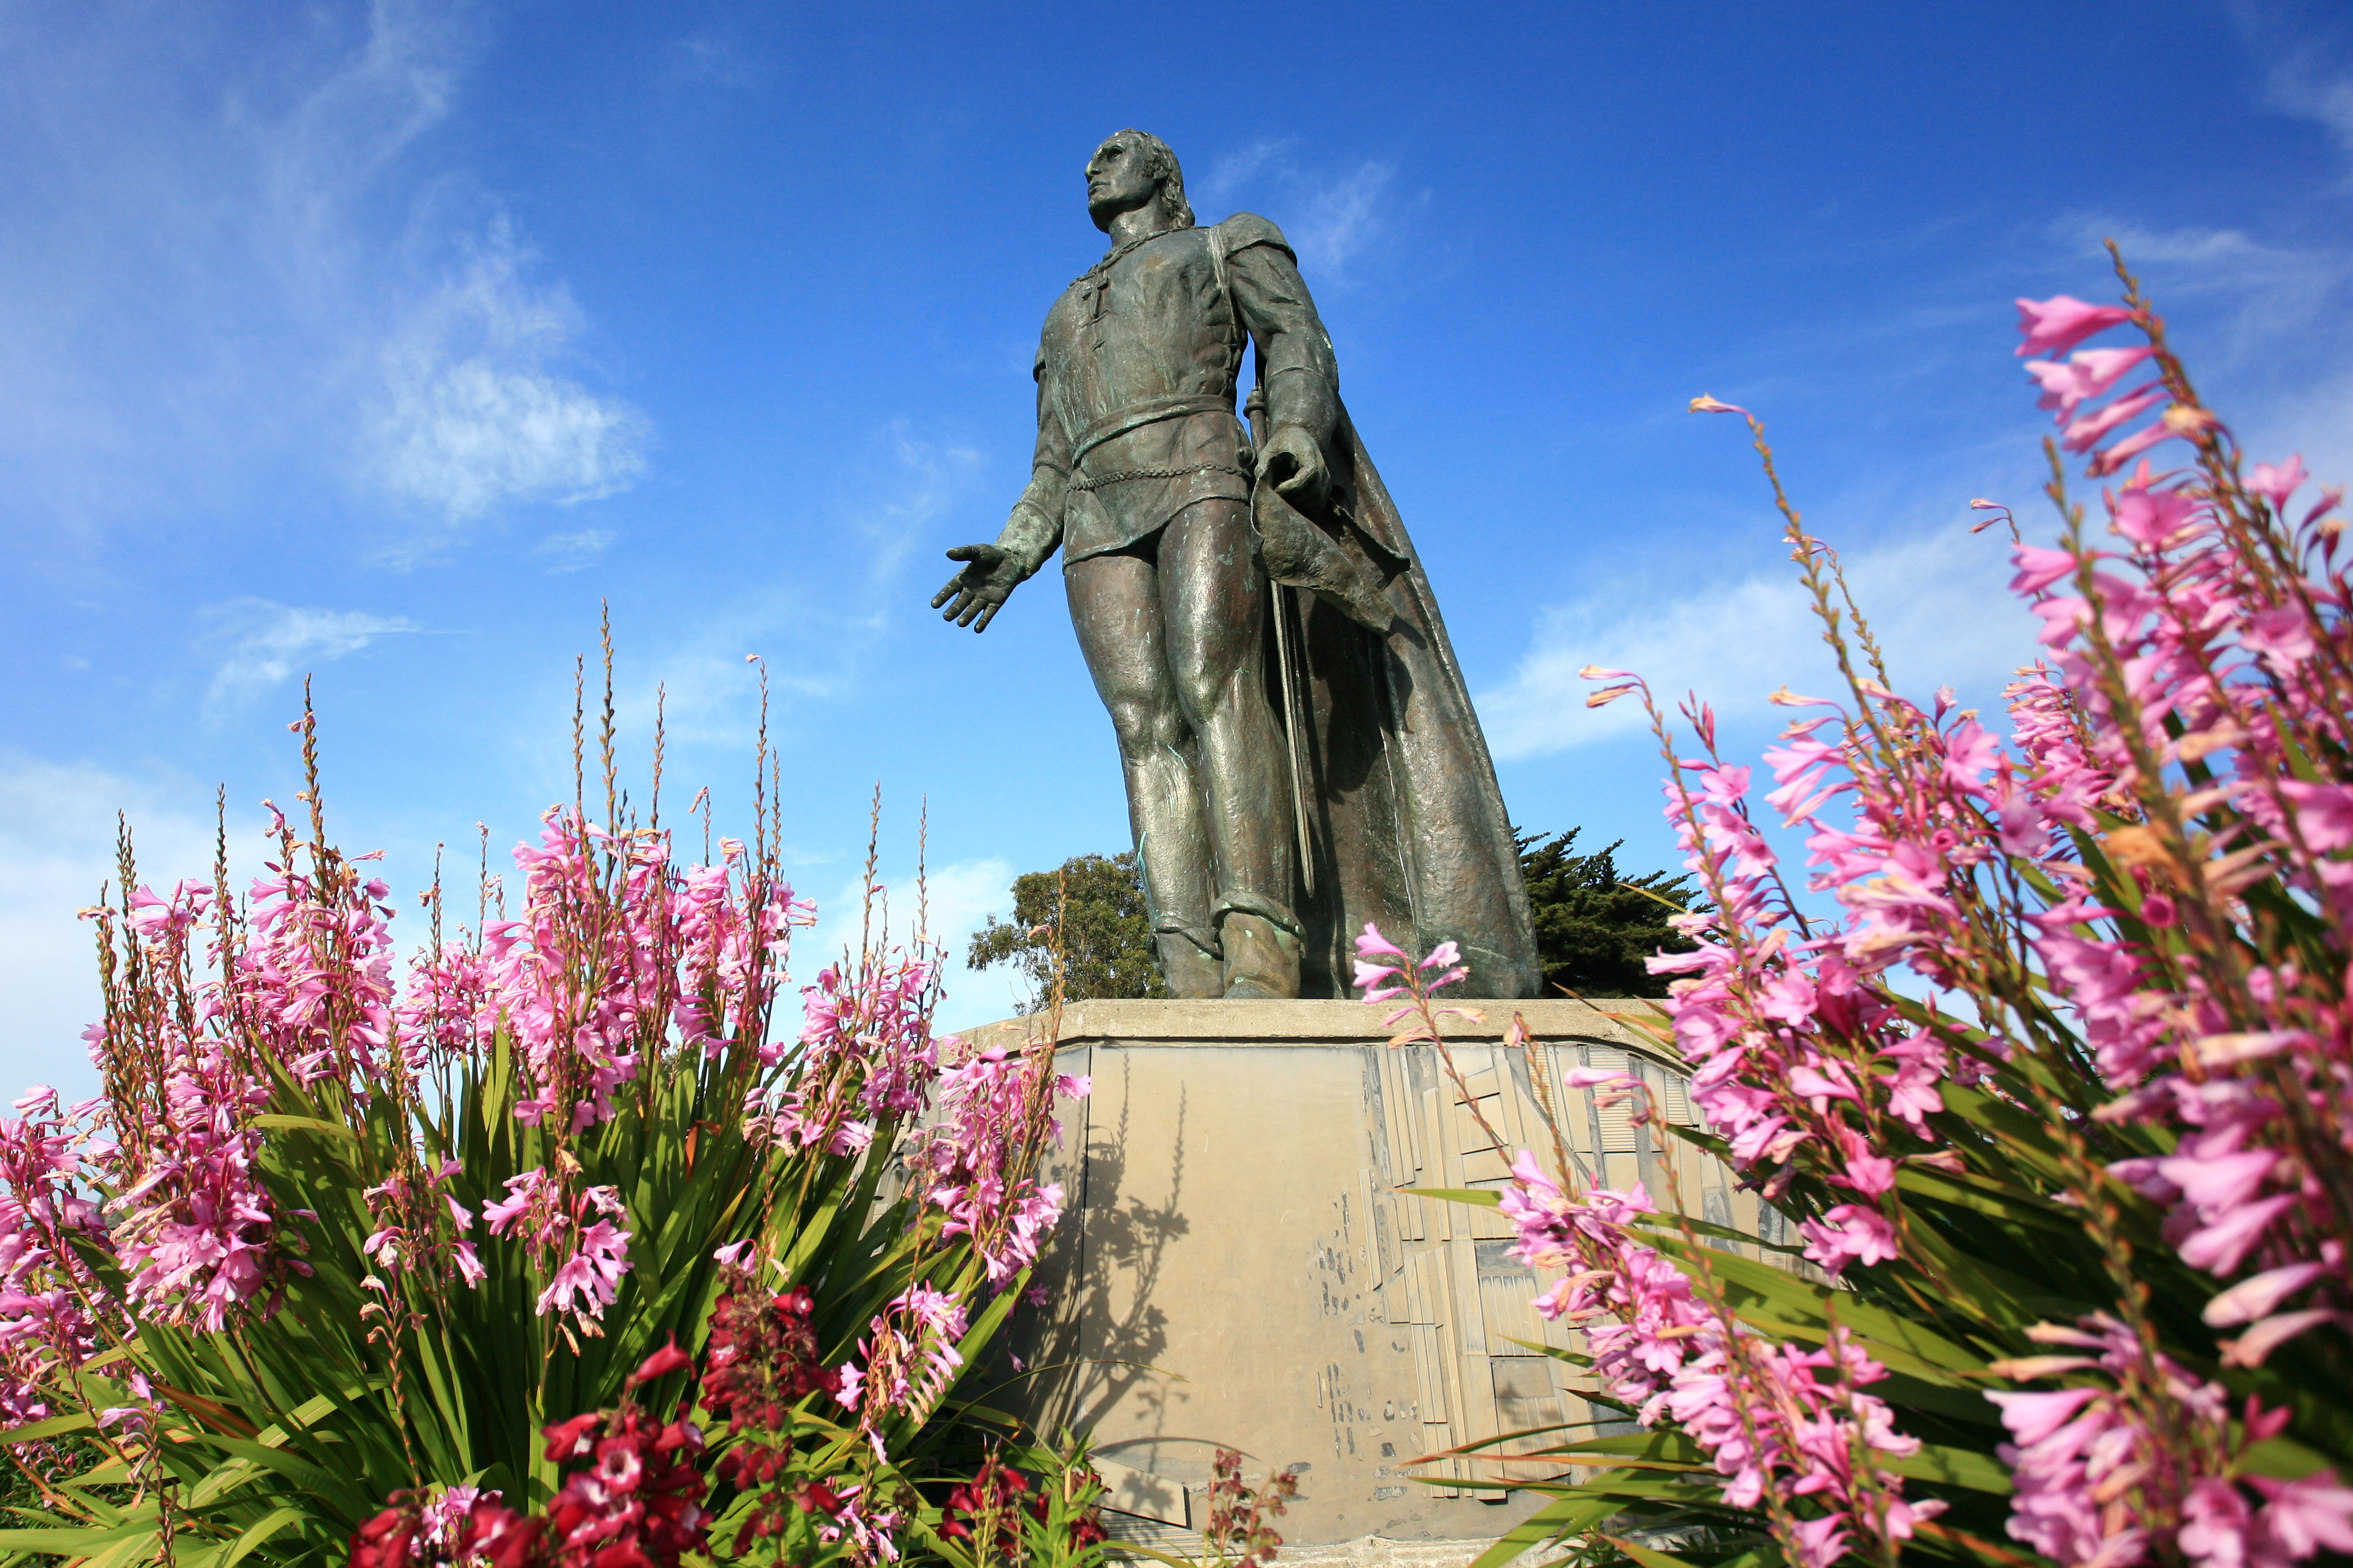 A low-angle photo of the Columbus Statue next to Coit Tower with a blue sky in the background.